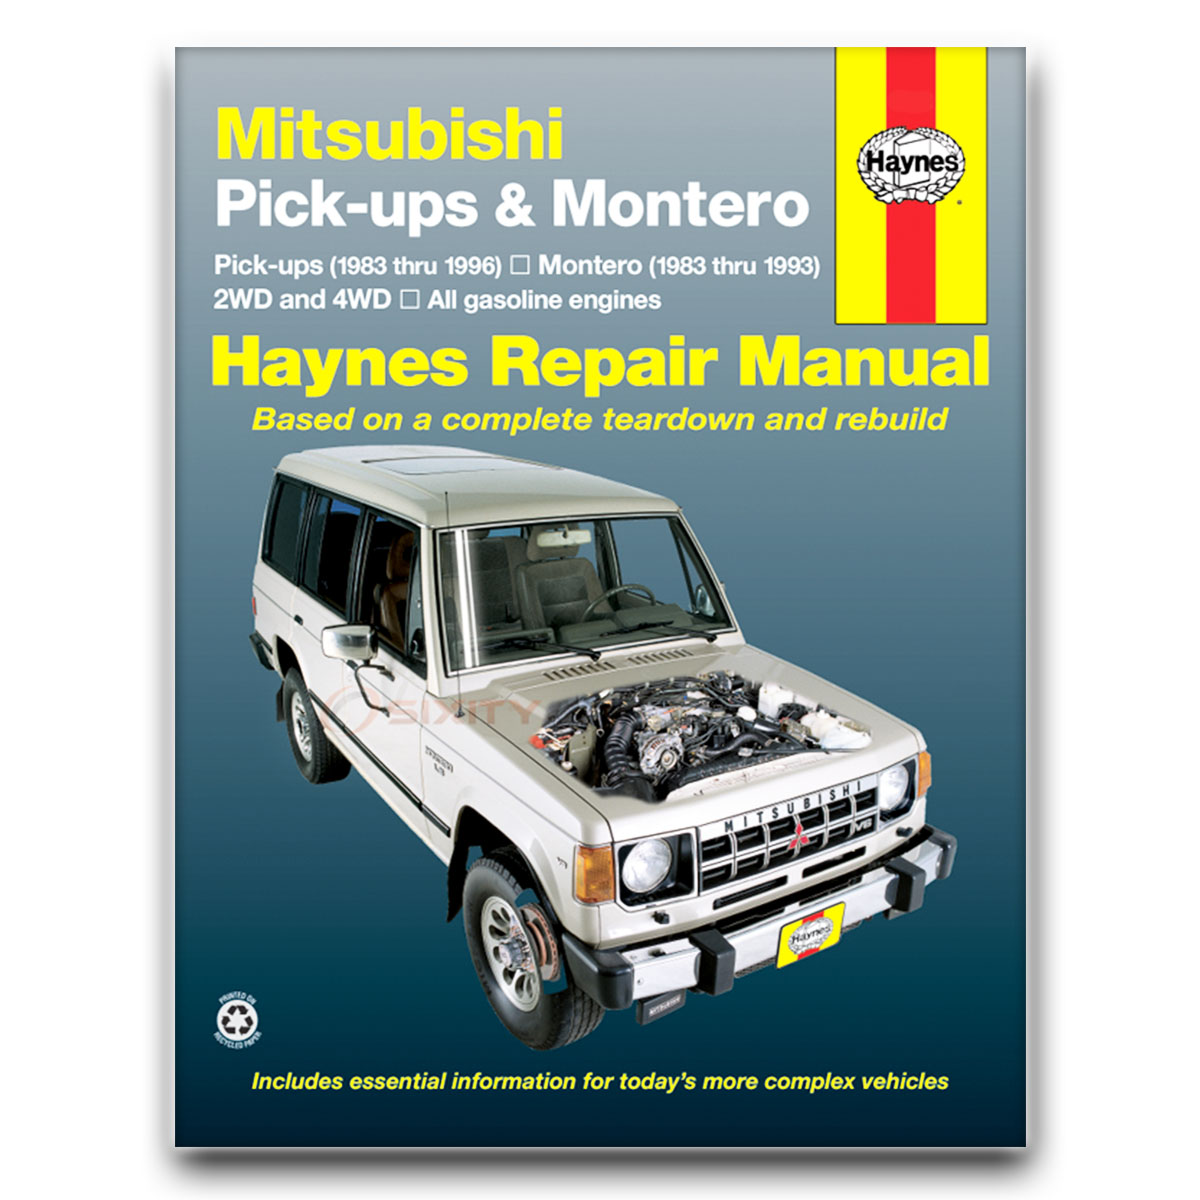 Haynes Repair Manual for Mitsubishi Montero RS Sport LS SR Base SP Shop nf